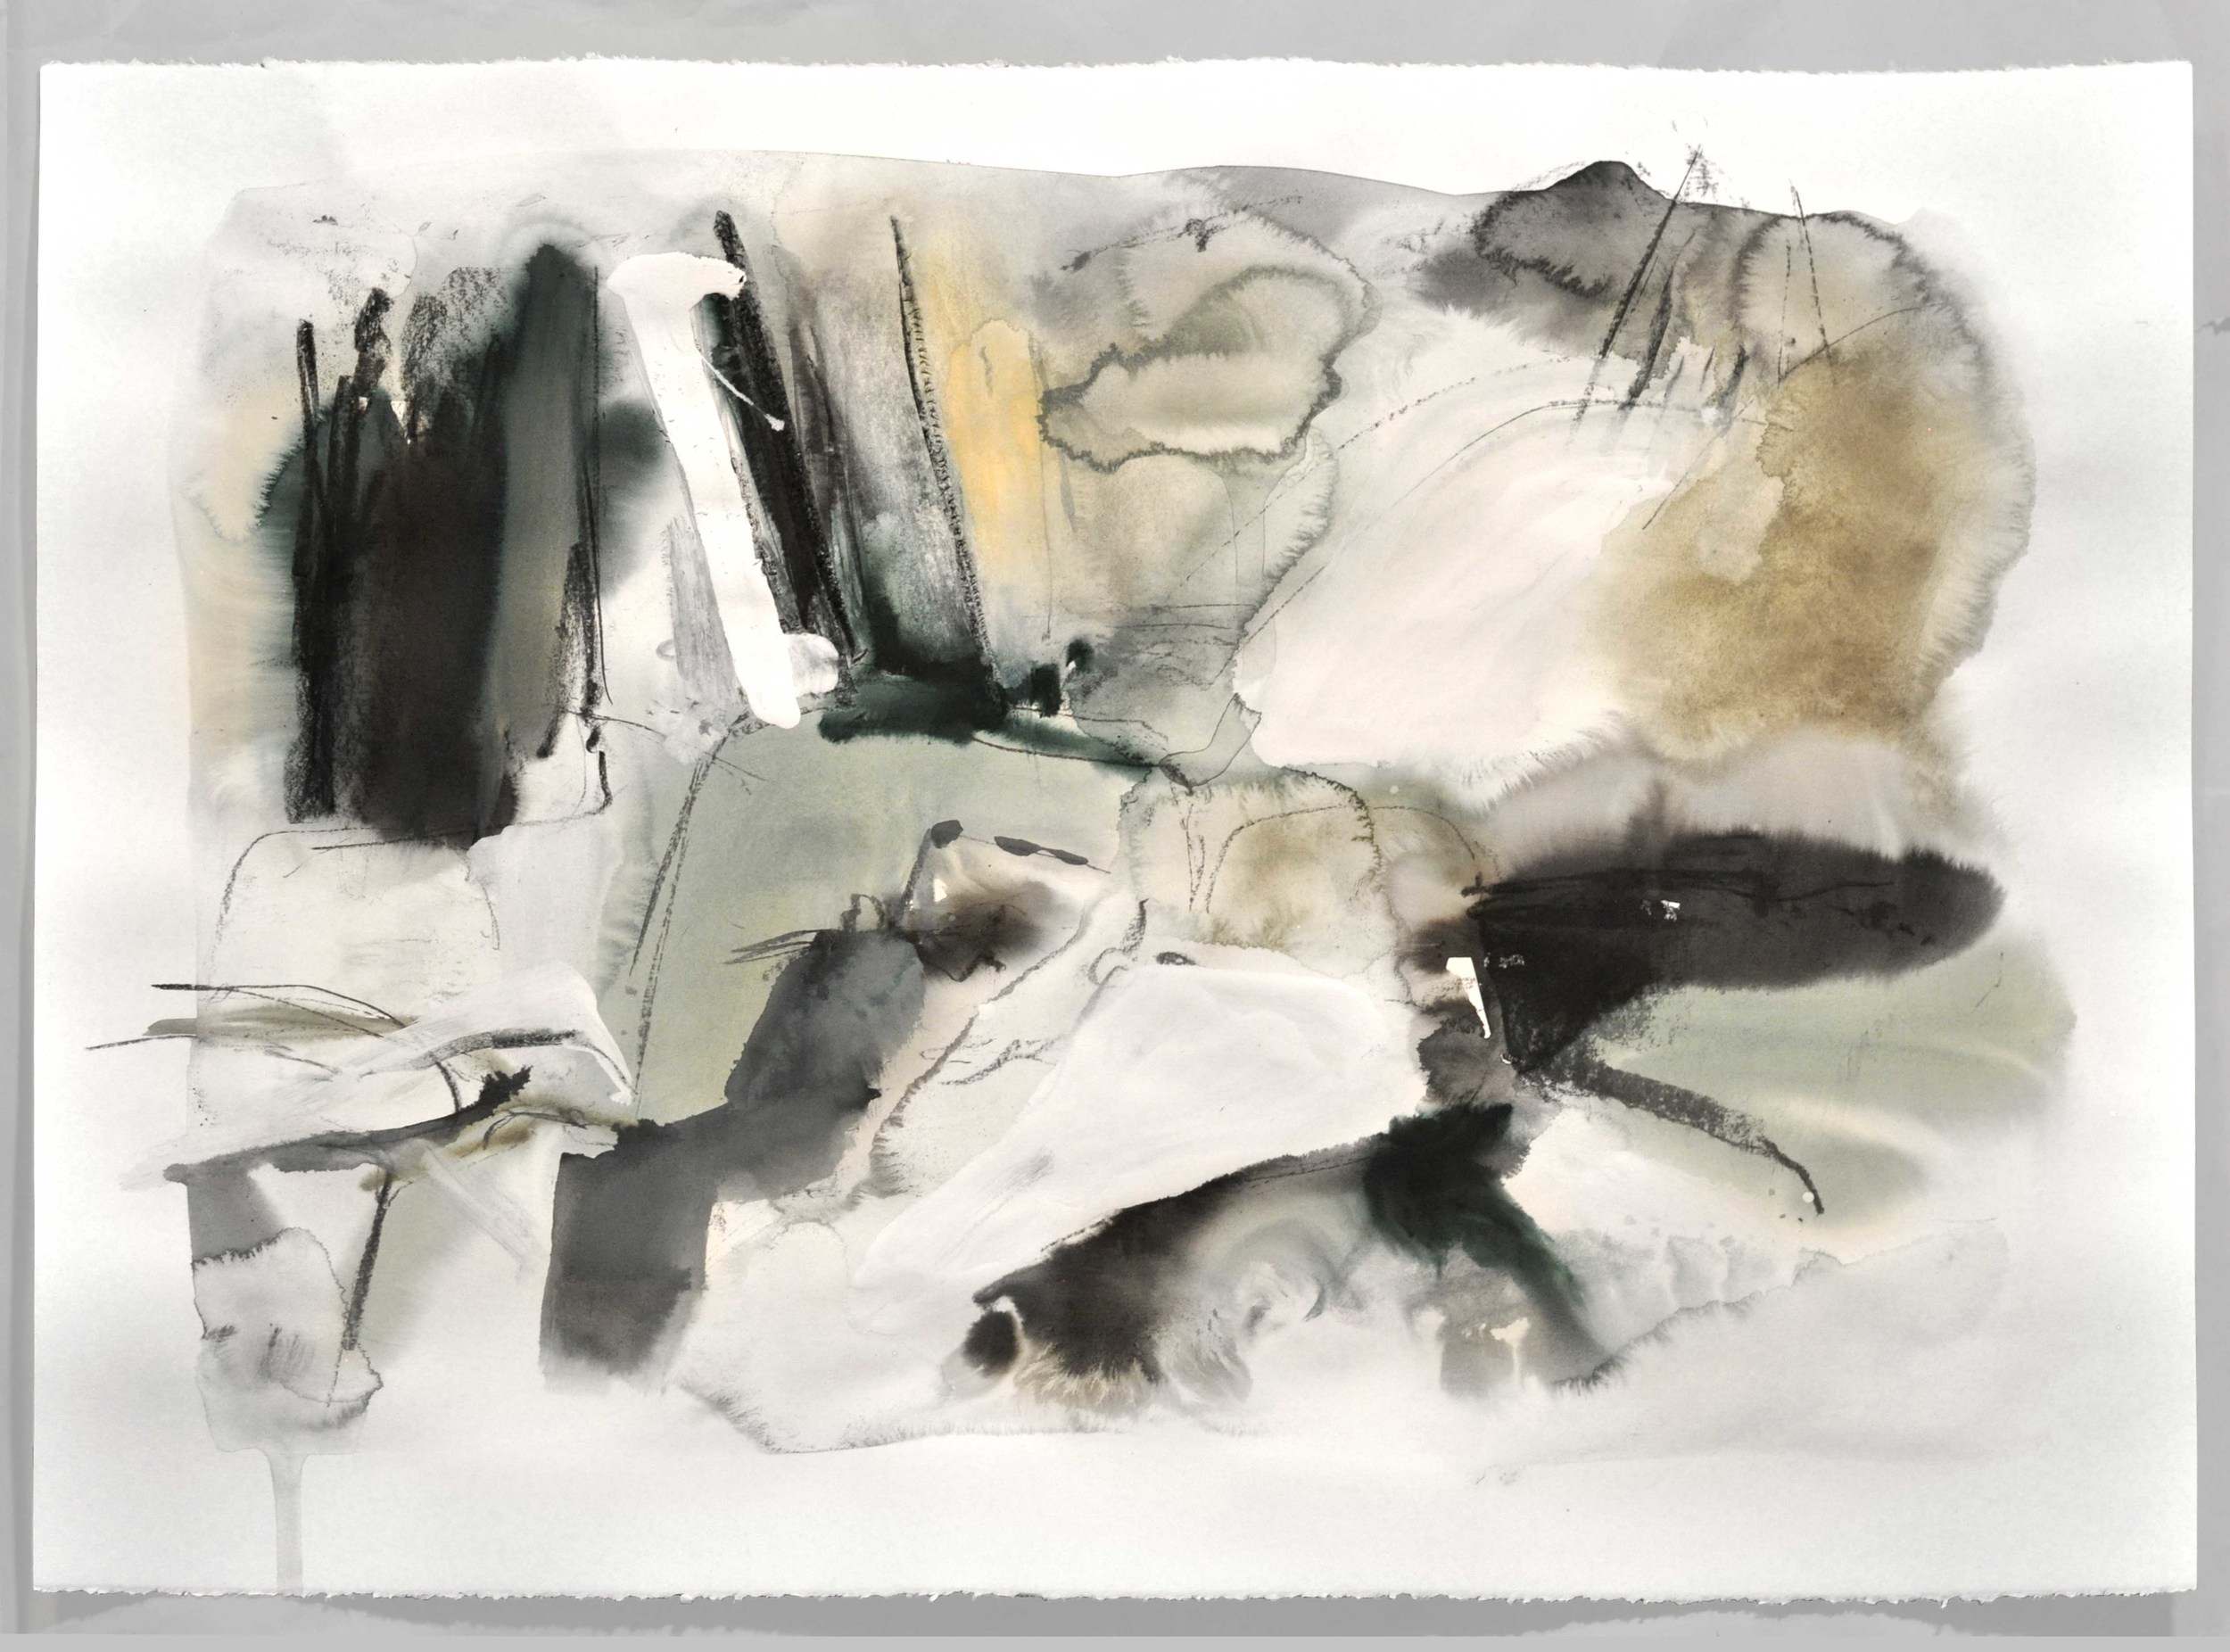 Mont III , 2014 ink, tempera, gouache, charcoal on paper 76 x 56 cm